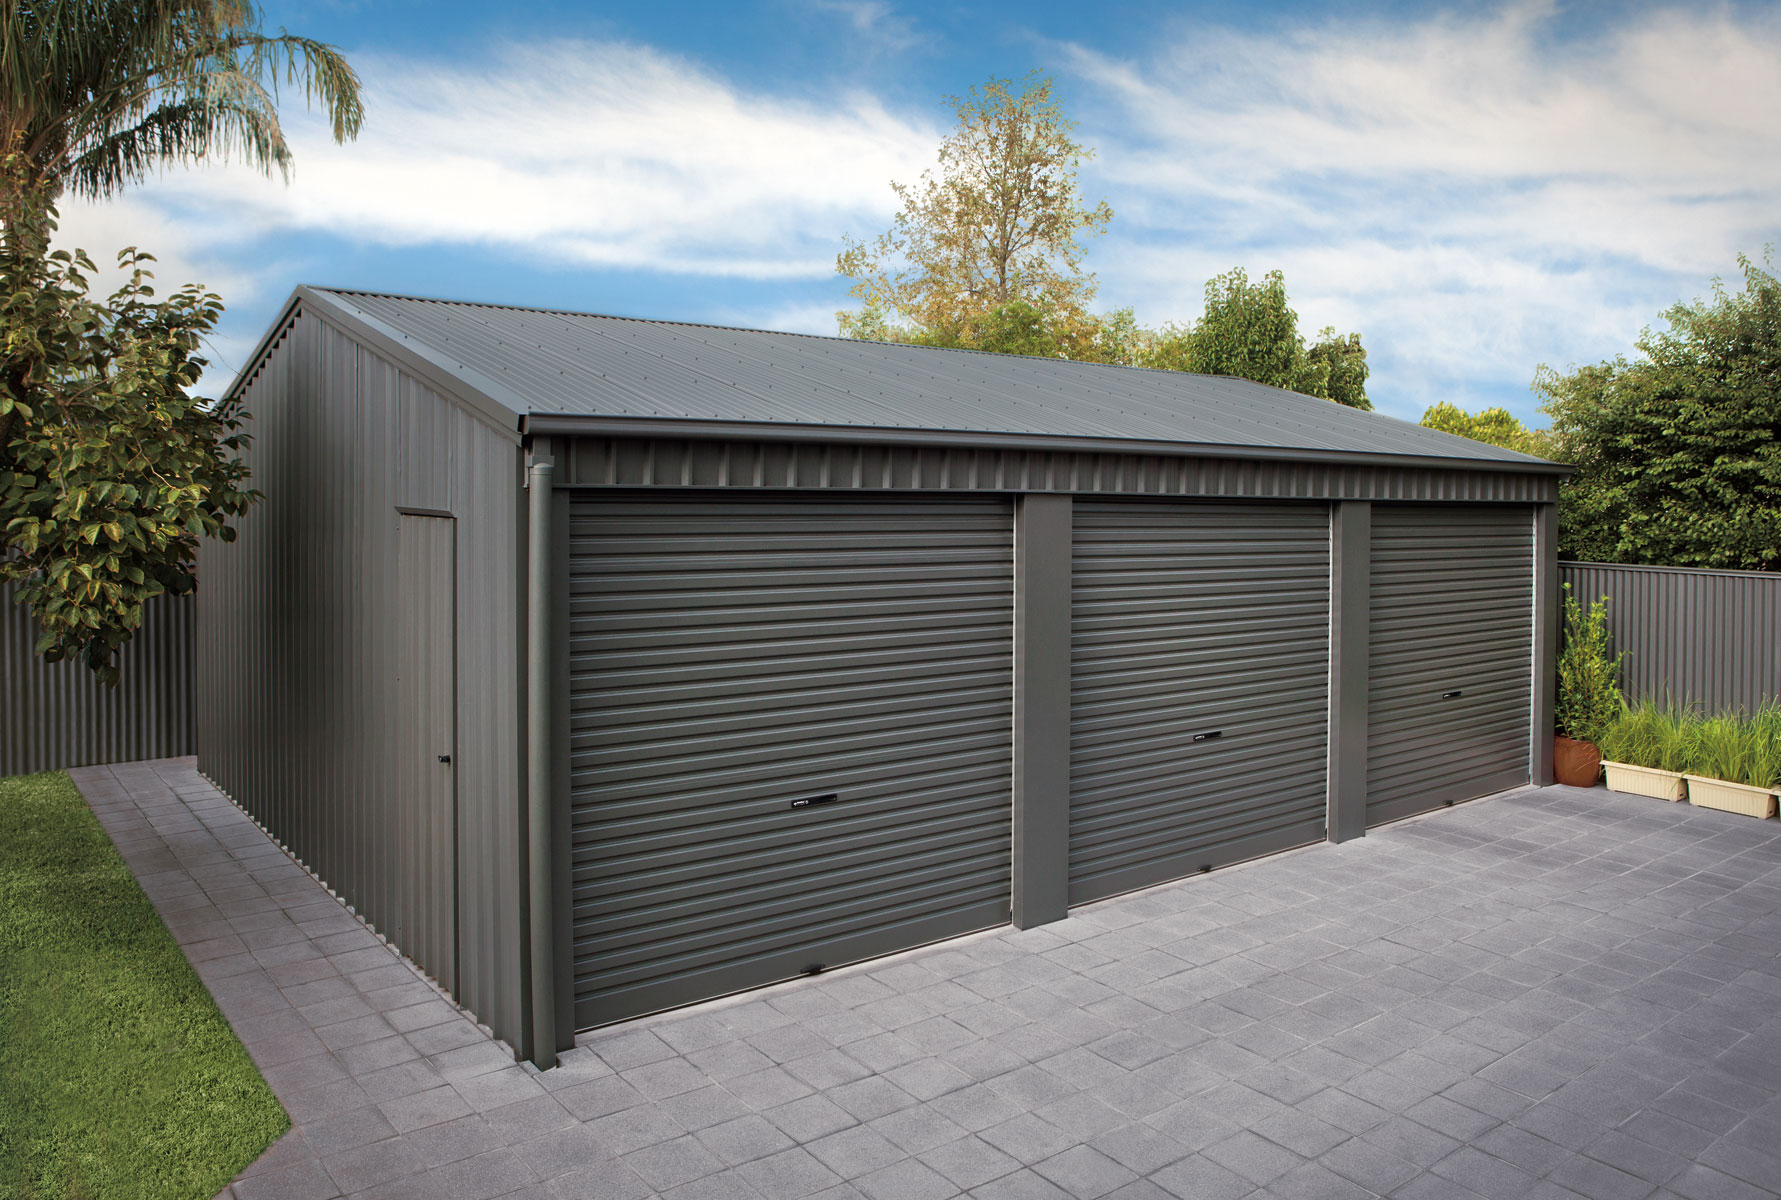 stratco garden shed installation instructions